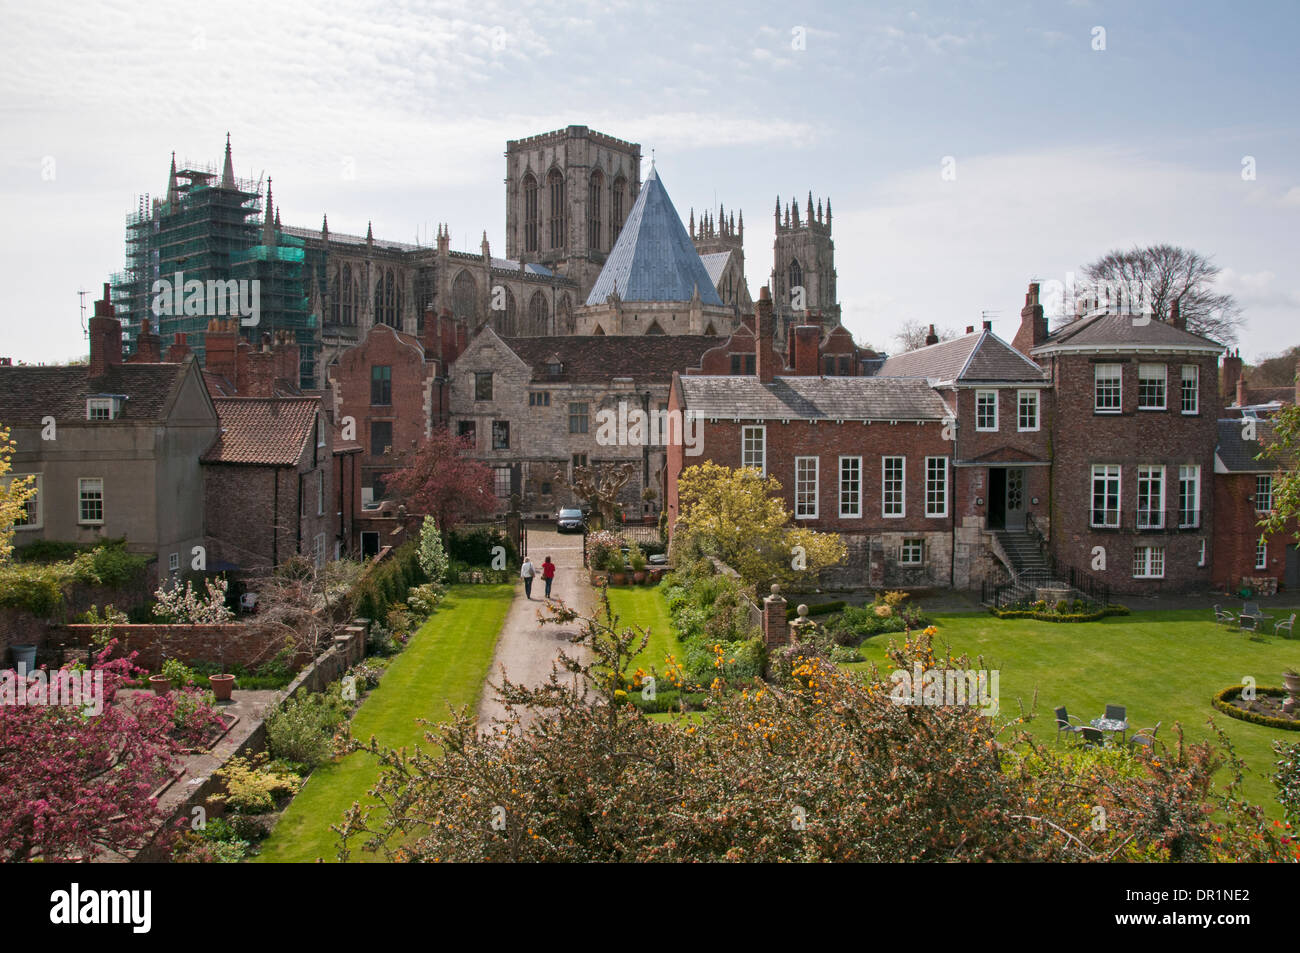 Scenic high view of 3 historic Grade 1 buildings - Minster, Treasurer's House & Grays Court - from city walls in York, North Yorkshire, England, UK. - Stock Image